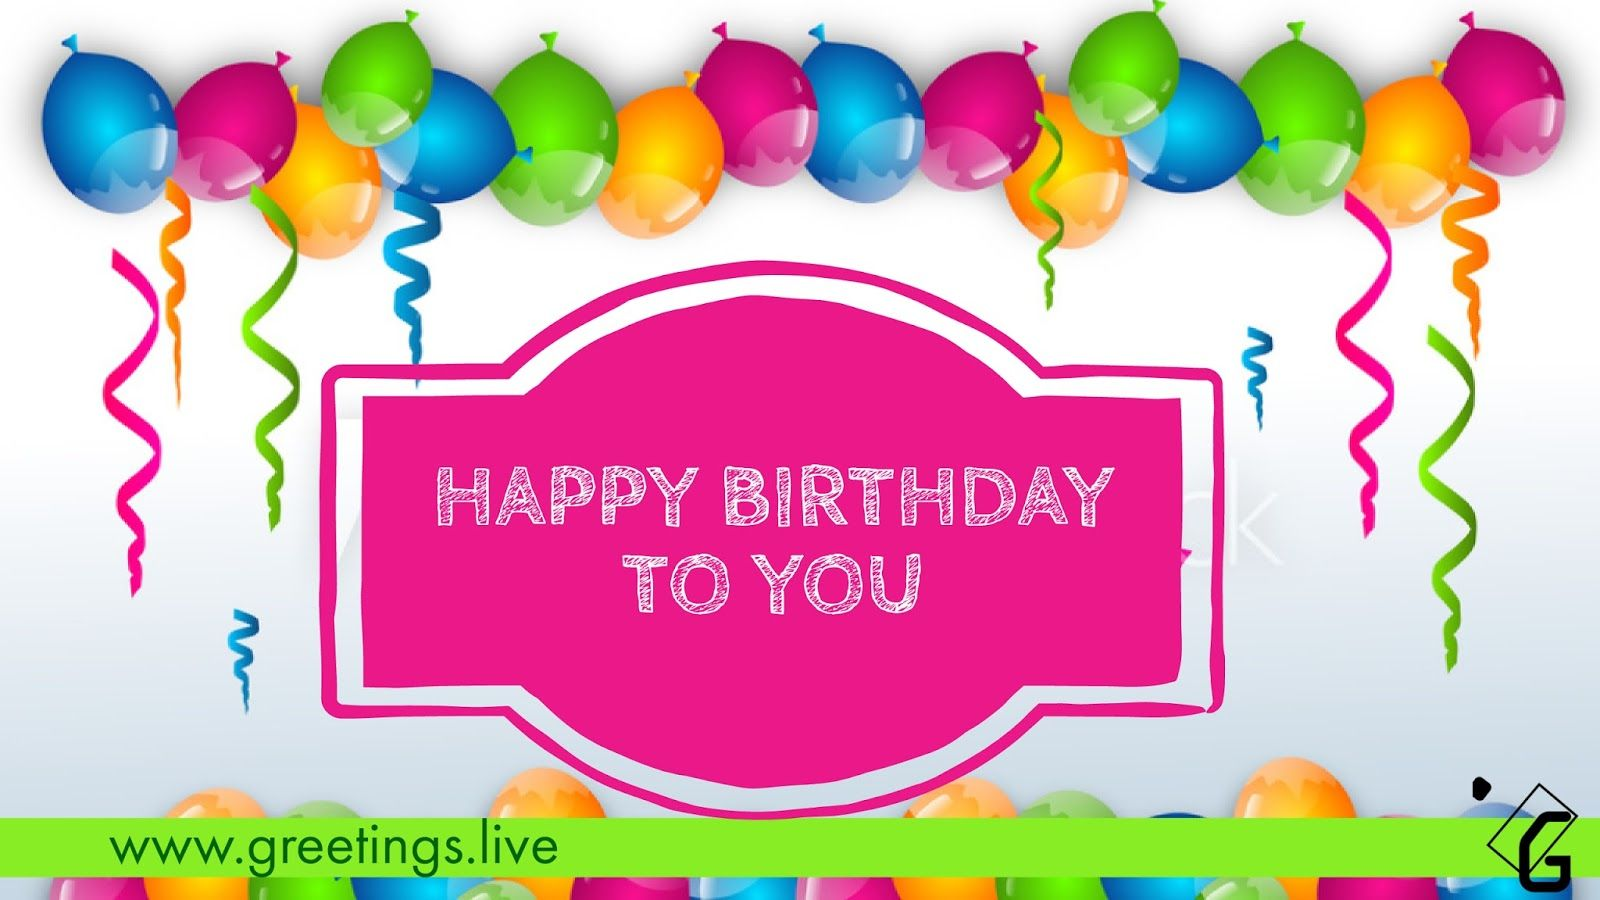 Happy birthday Wishes HD Quality | Greetings Live | Happy